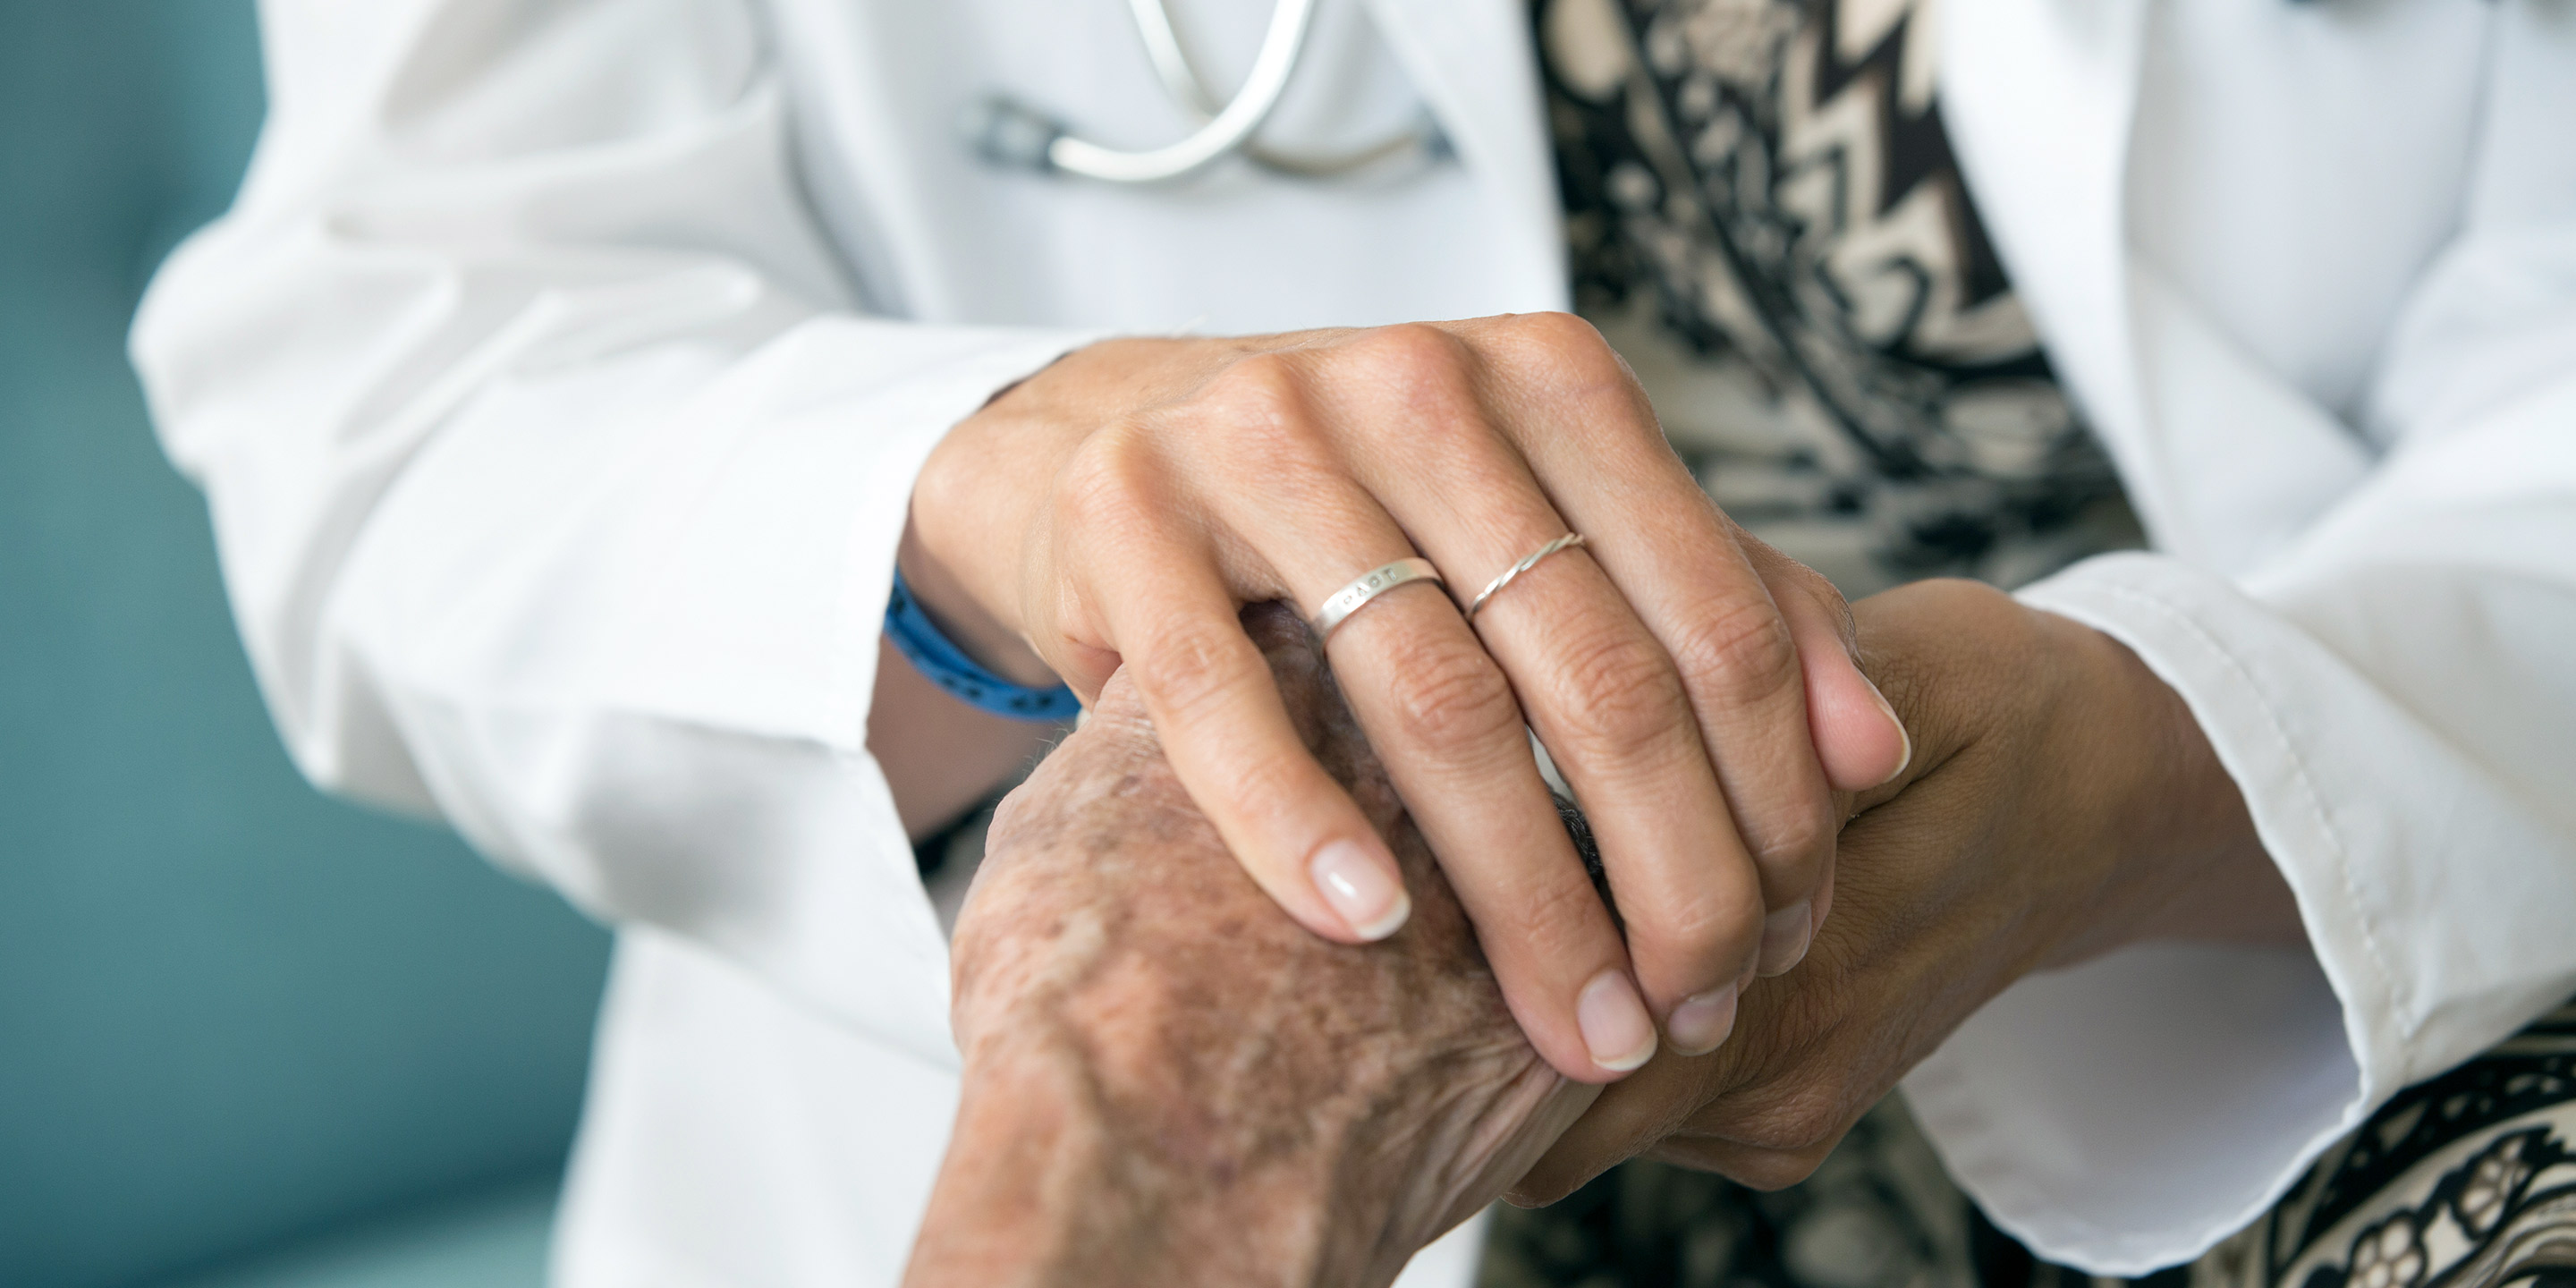 A female doctor wearing a white coat places her hand over a patient's hand